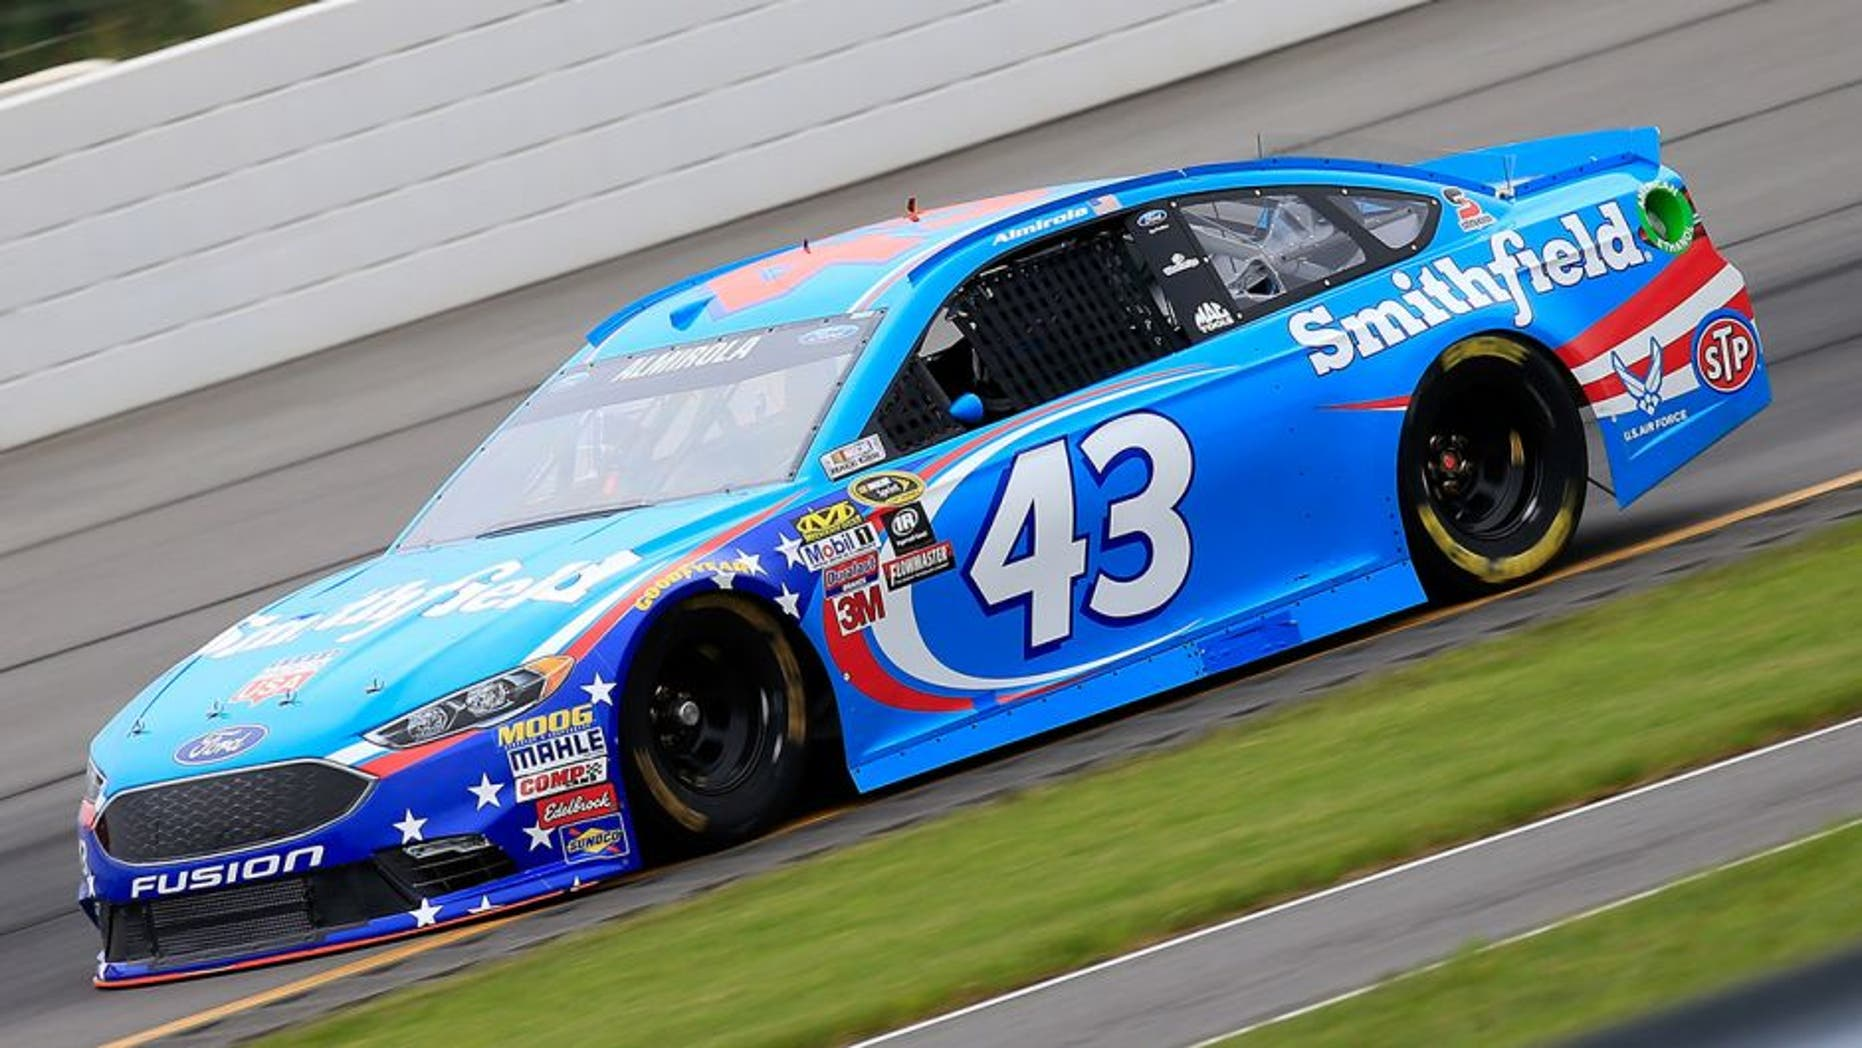 """LONG POND, PA - JUNE 03: Aric Almirola, driver of the #43 Smithfield Ford, qualifies for the NASCAR Sprint Cup Series Axalta """"We Paint Winners"""" 400 at Pocono Raceway on June 3, 2016 in Long Pond, Pennsylvania. (Photo by Chris Trotman/NASCAR via Getty Images)"""